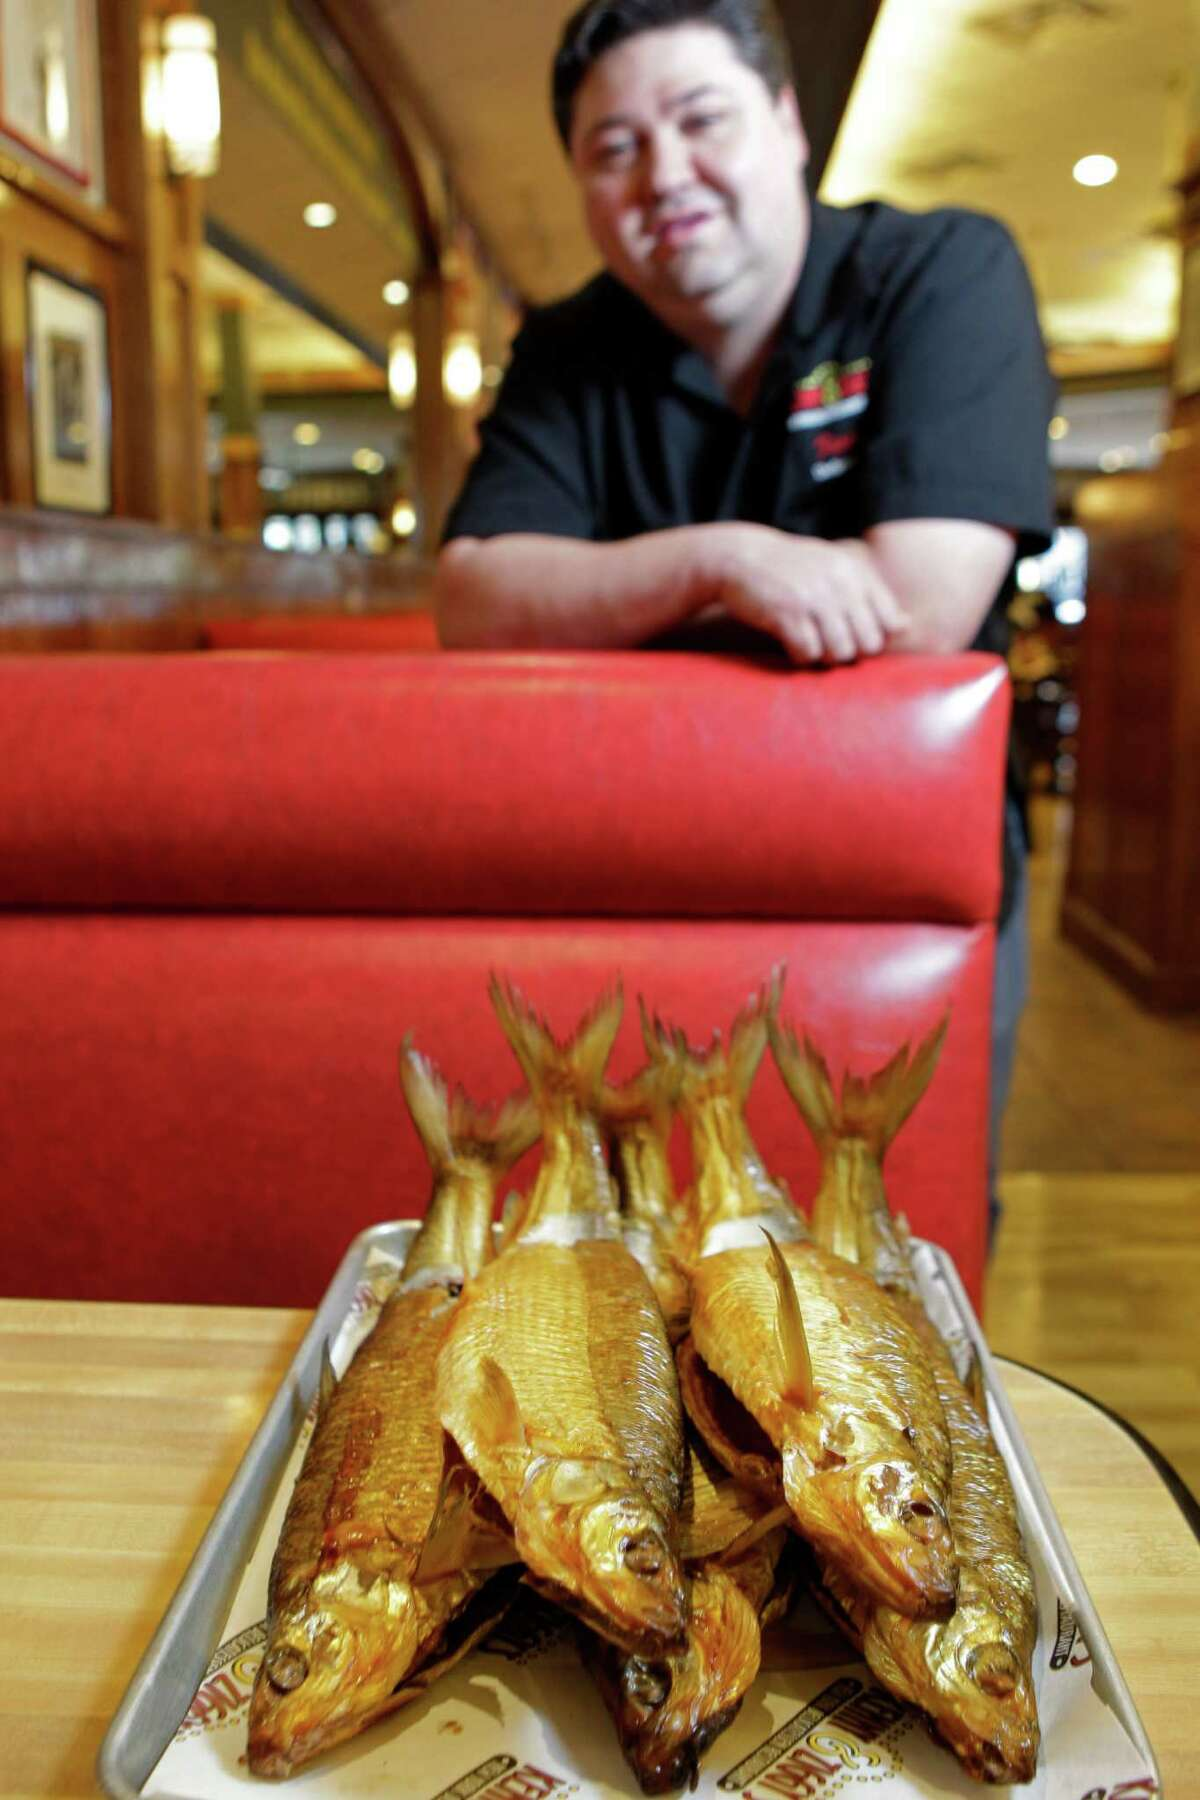 Ziggy Gruber, owner of Kenny and Ziggy's, 2327 Post Oak Blvd., poses with a tray of white fish, Thursday, Sept. 20, 2012, in Houston. ( Melissa Phillip / Houston Chronicle )